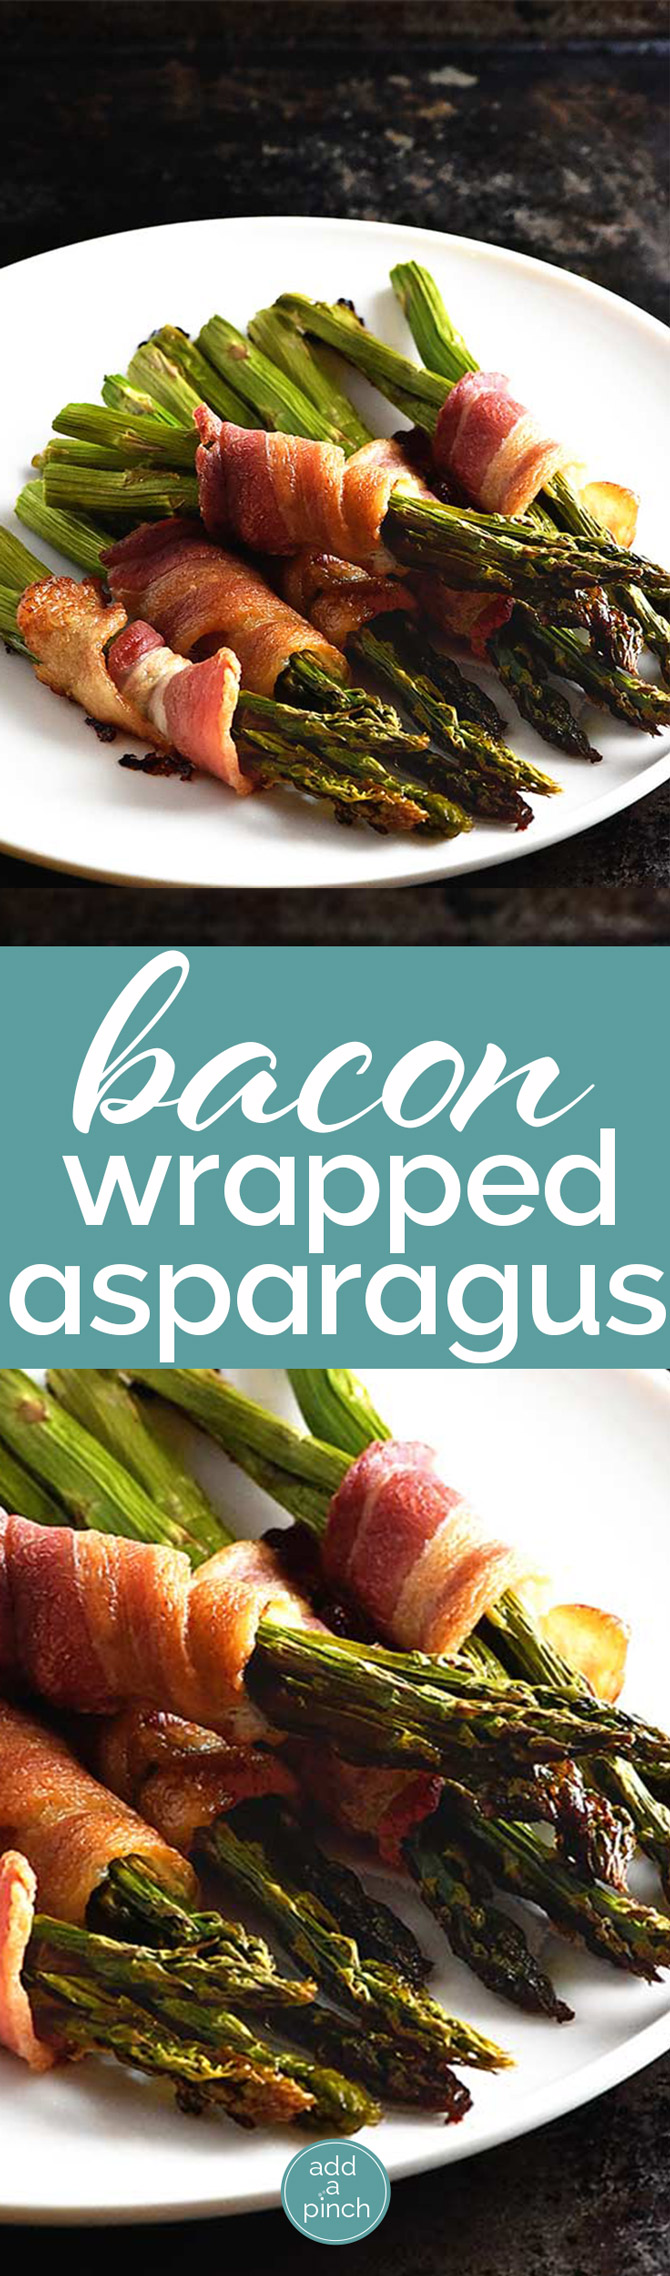 Bacon wrapped asparagus makes a delicious side dish. On the table in less than 30 minutes, this makes an easy and elegant asparagus recipe perfect for entertaining. // addapinch.com